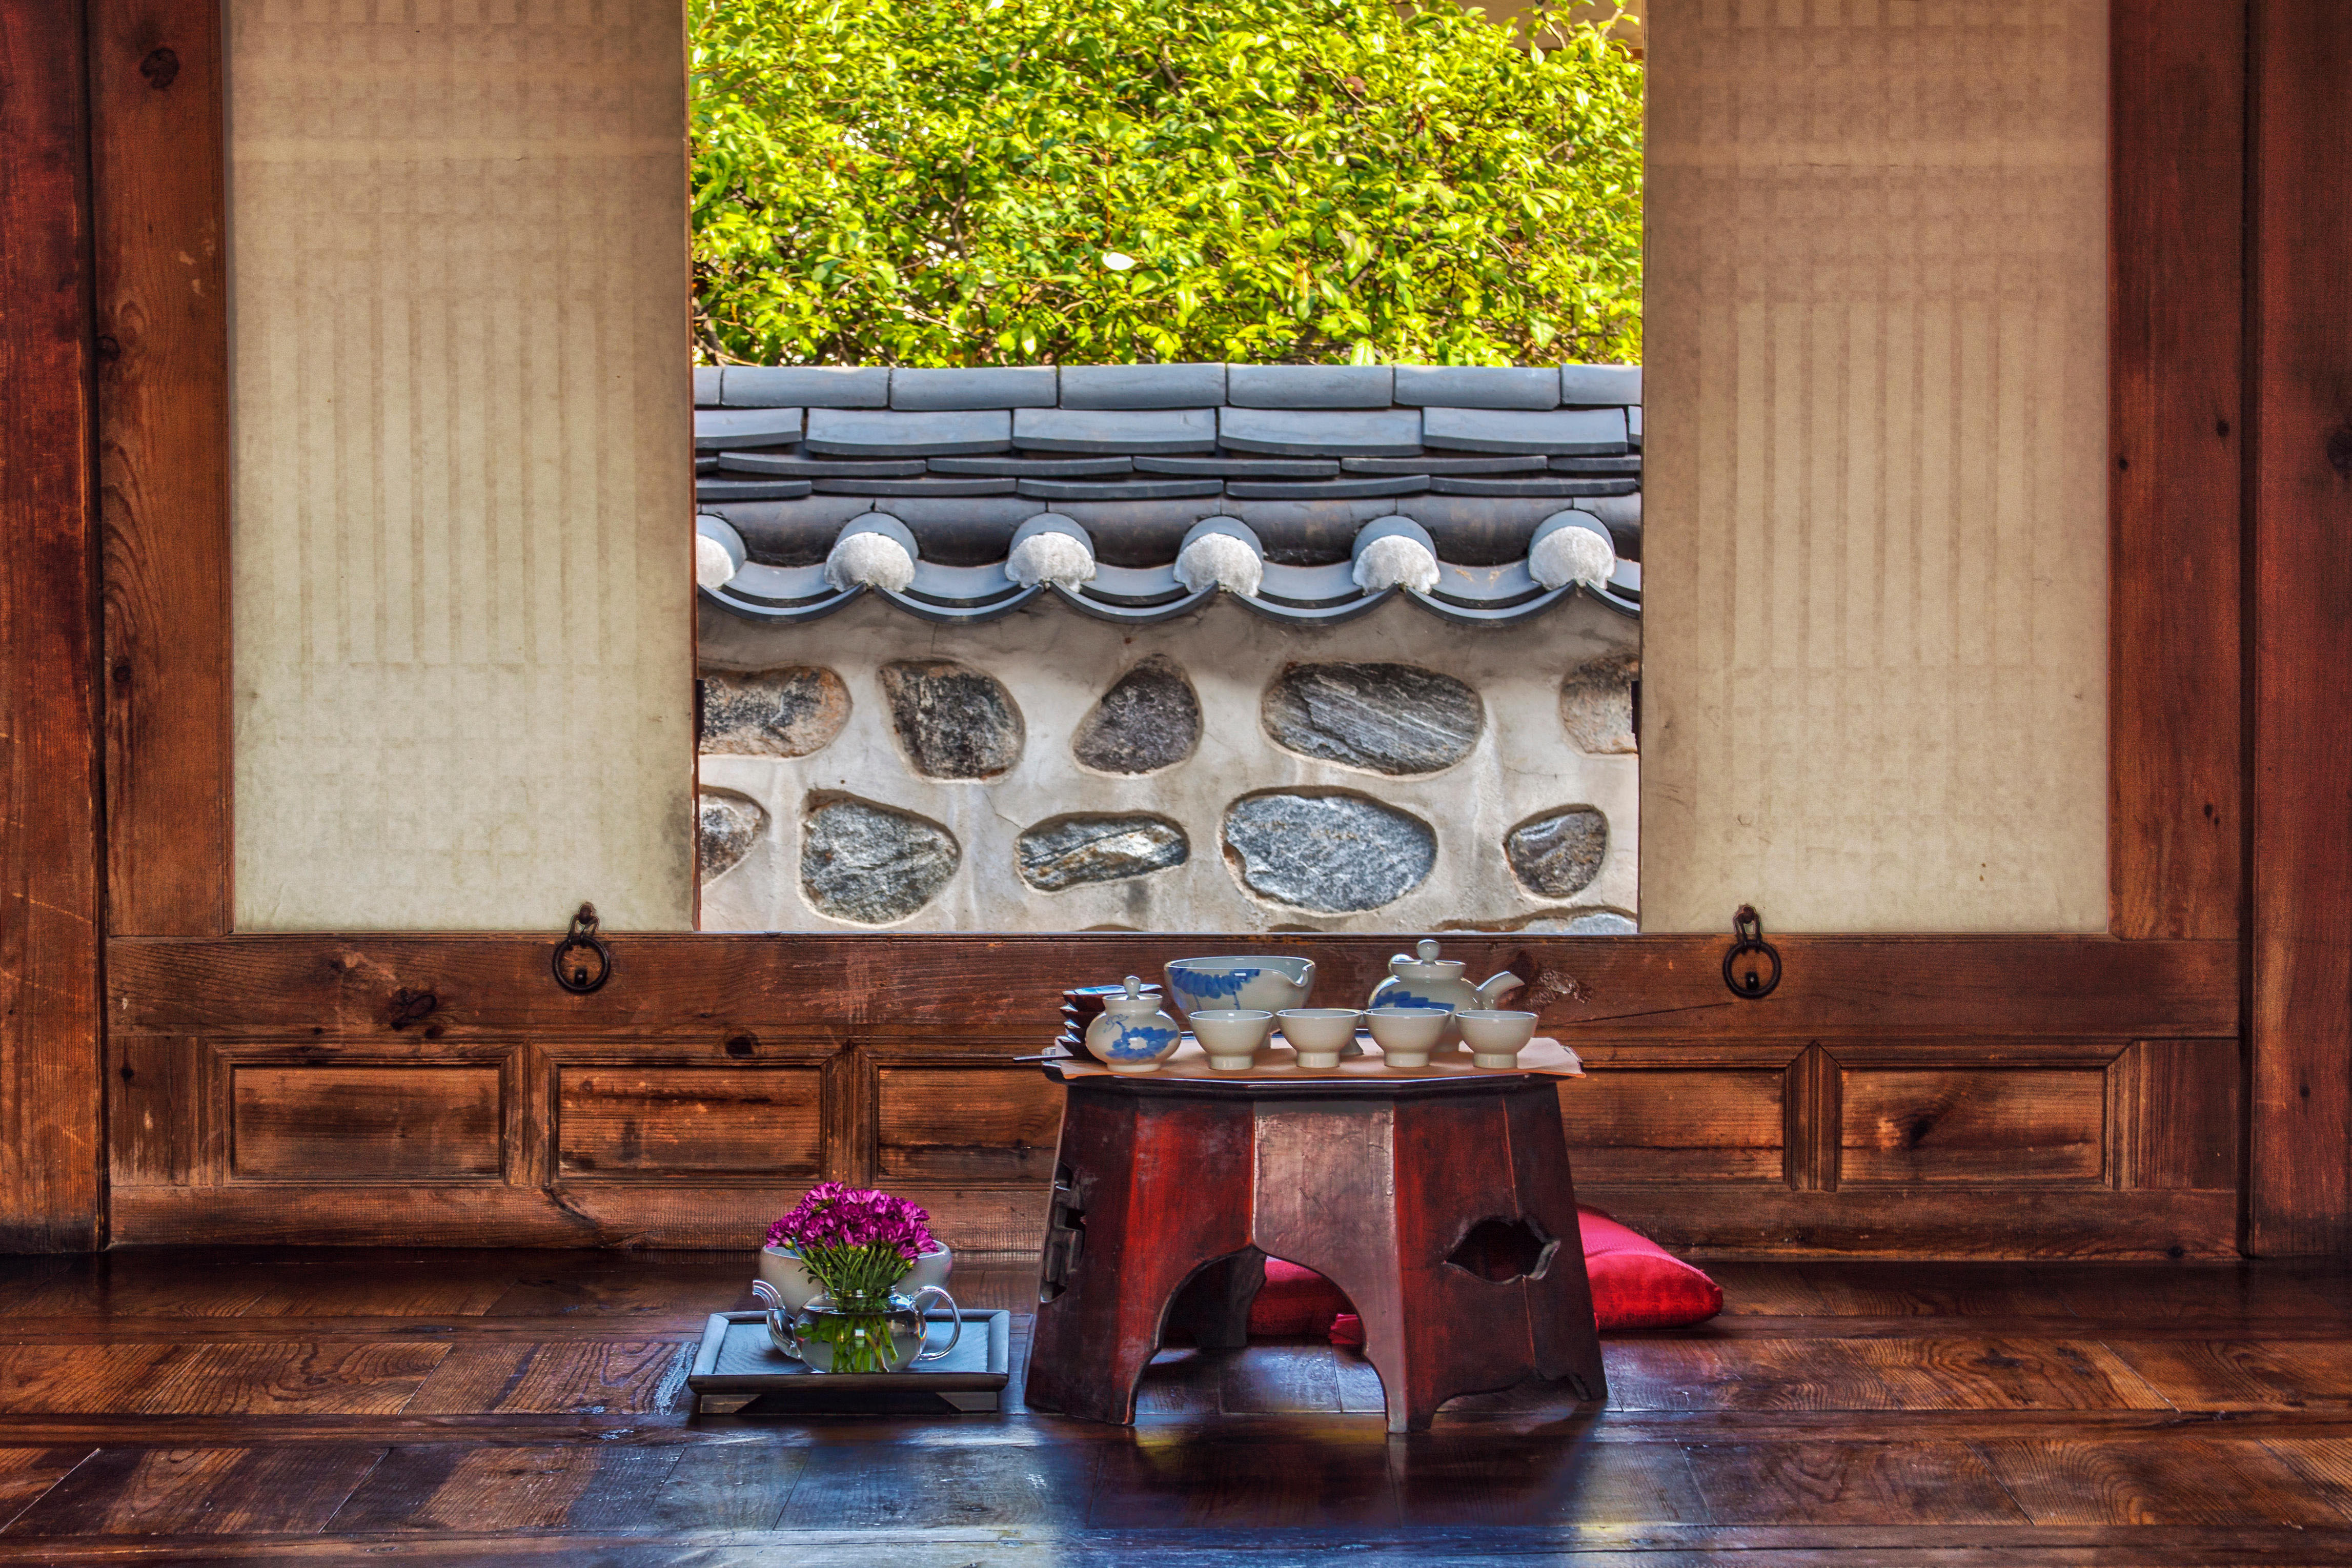 5 Traditional Korean Houses You Can Actually Stay In